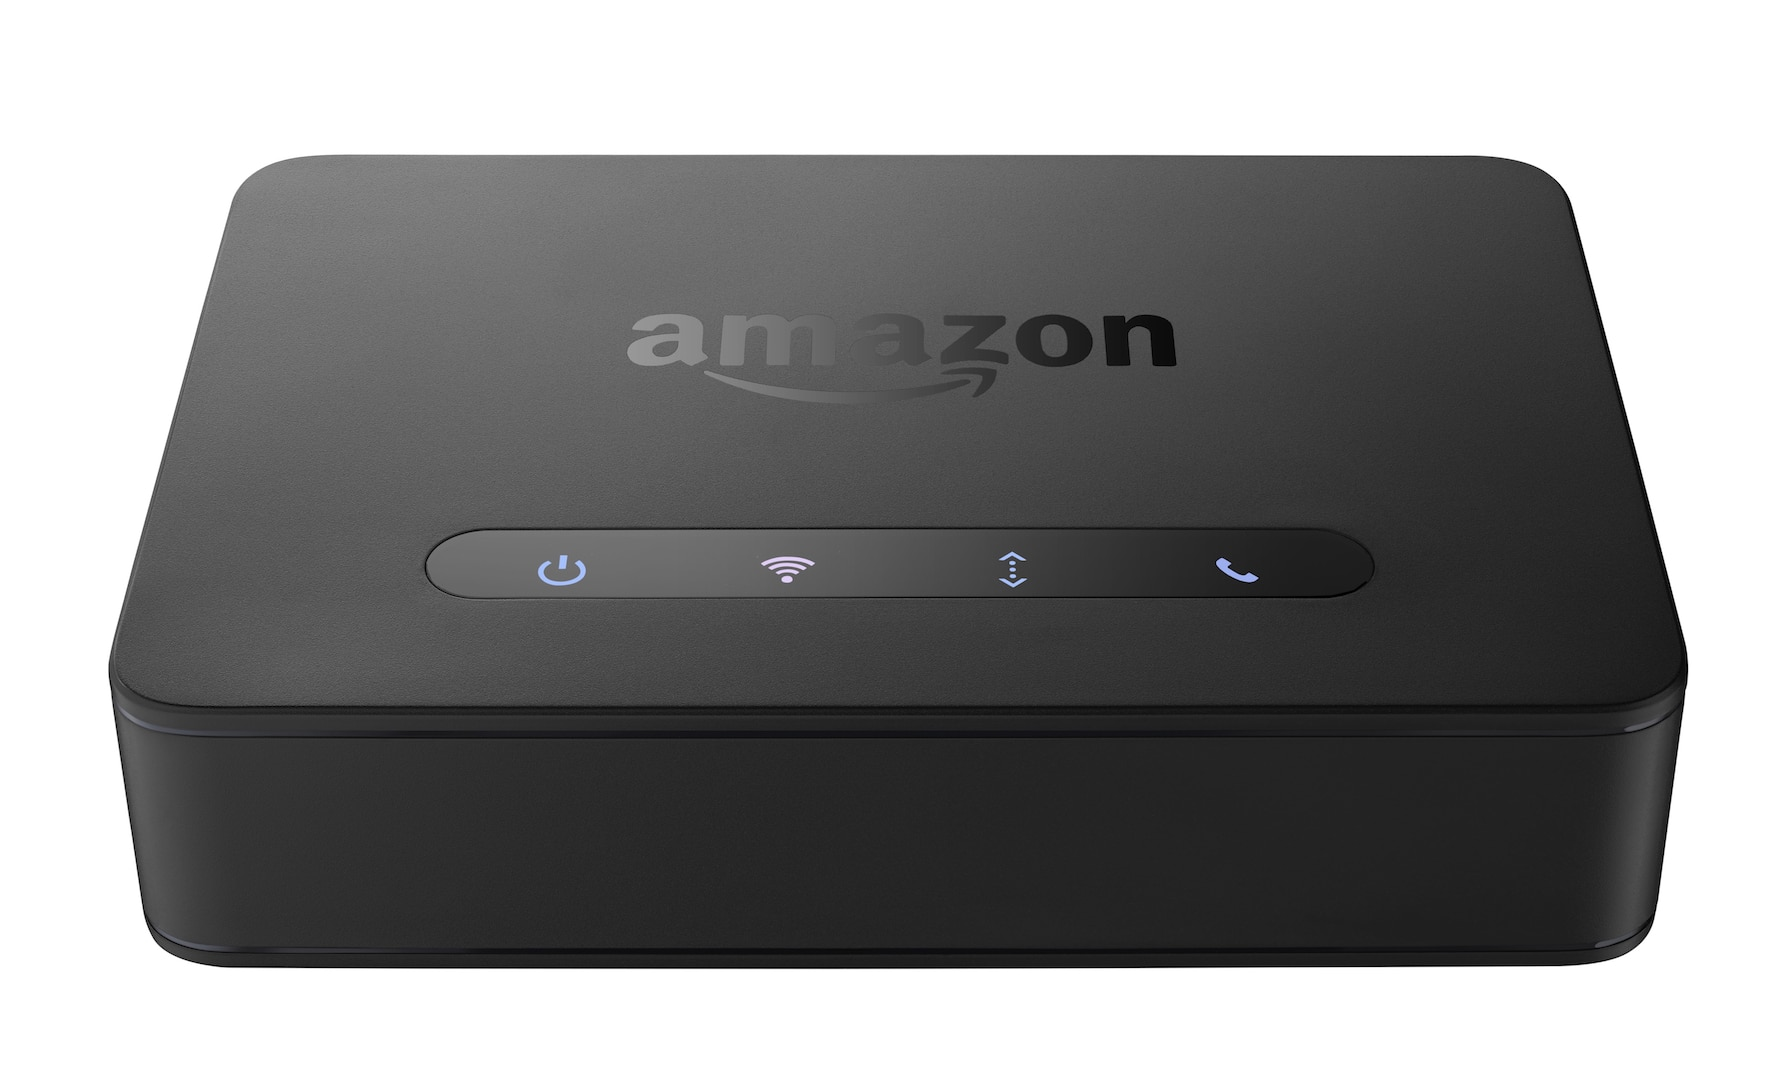 schritt in die zukunft amazon stellt neuen fire tv echo. Black Bedroom Furniture Sets. Home Design Ideas